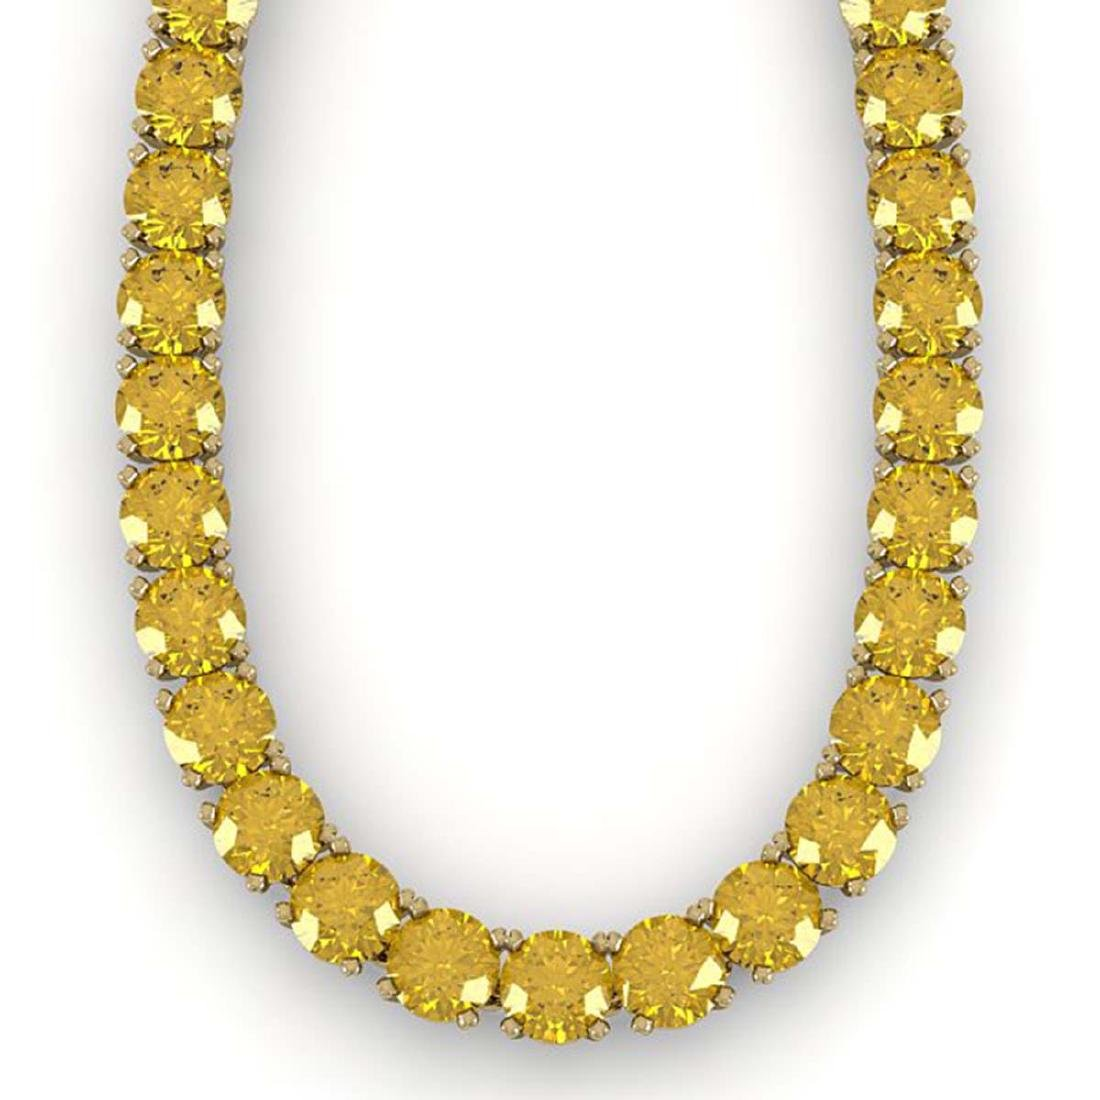 30 CTW Certified Fancy Yellow SI Diamond Necklace 14K - 2